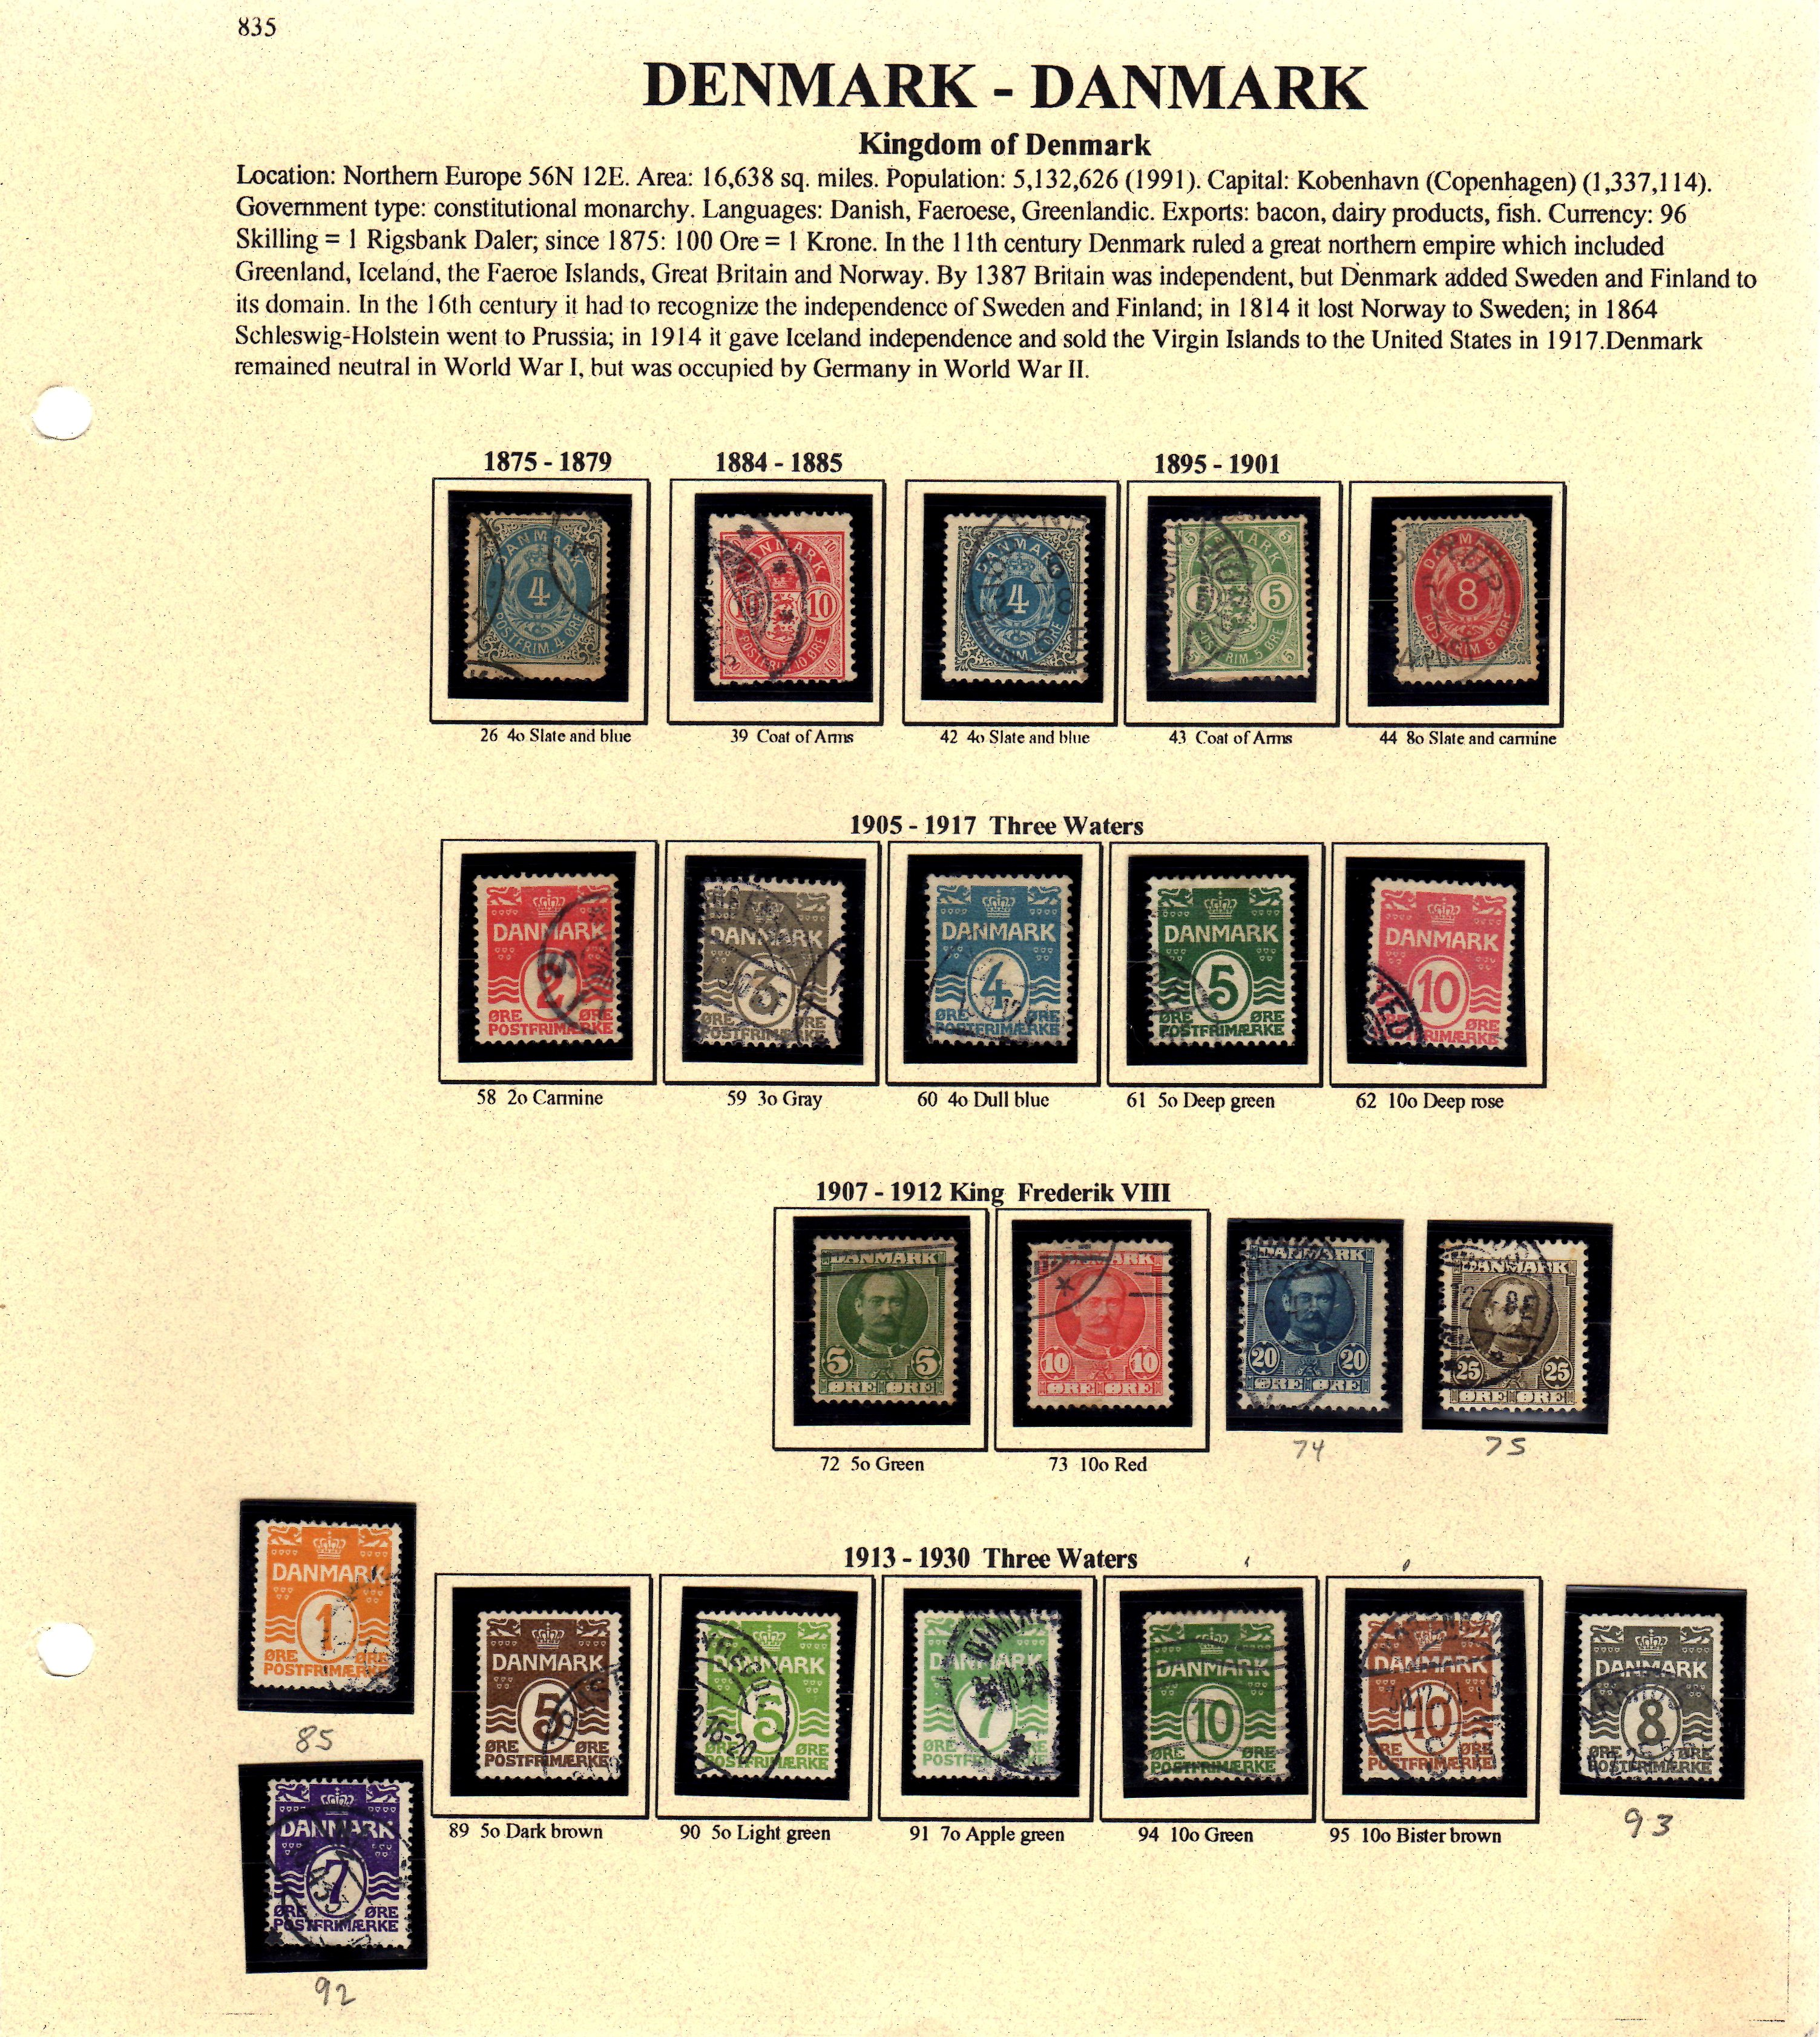 Stamps/denmarkpage1.jpg